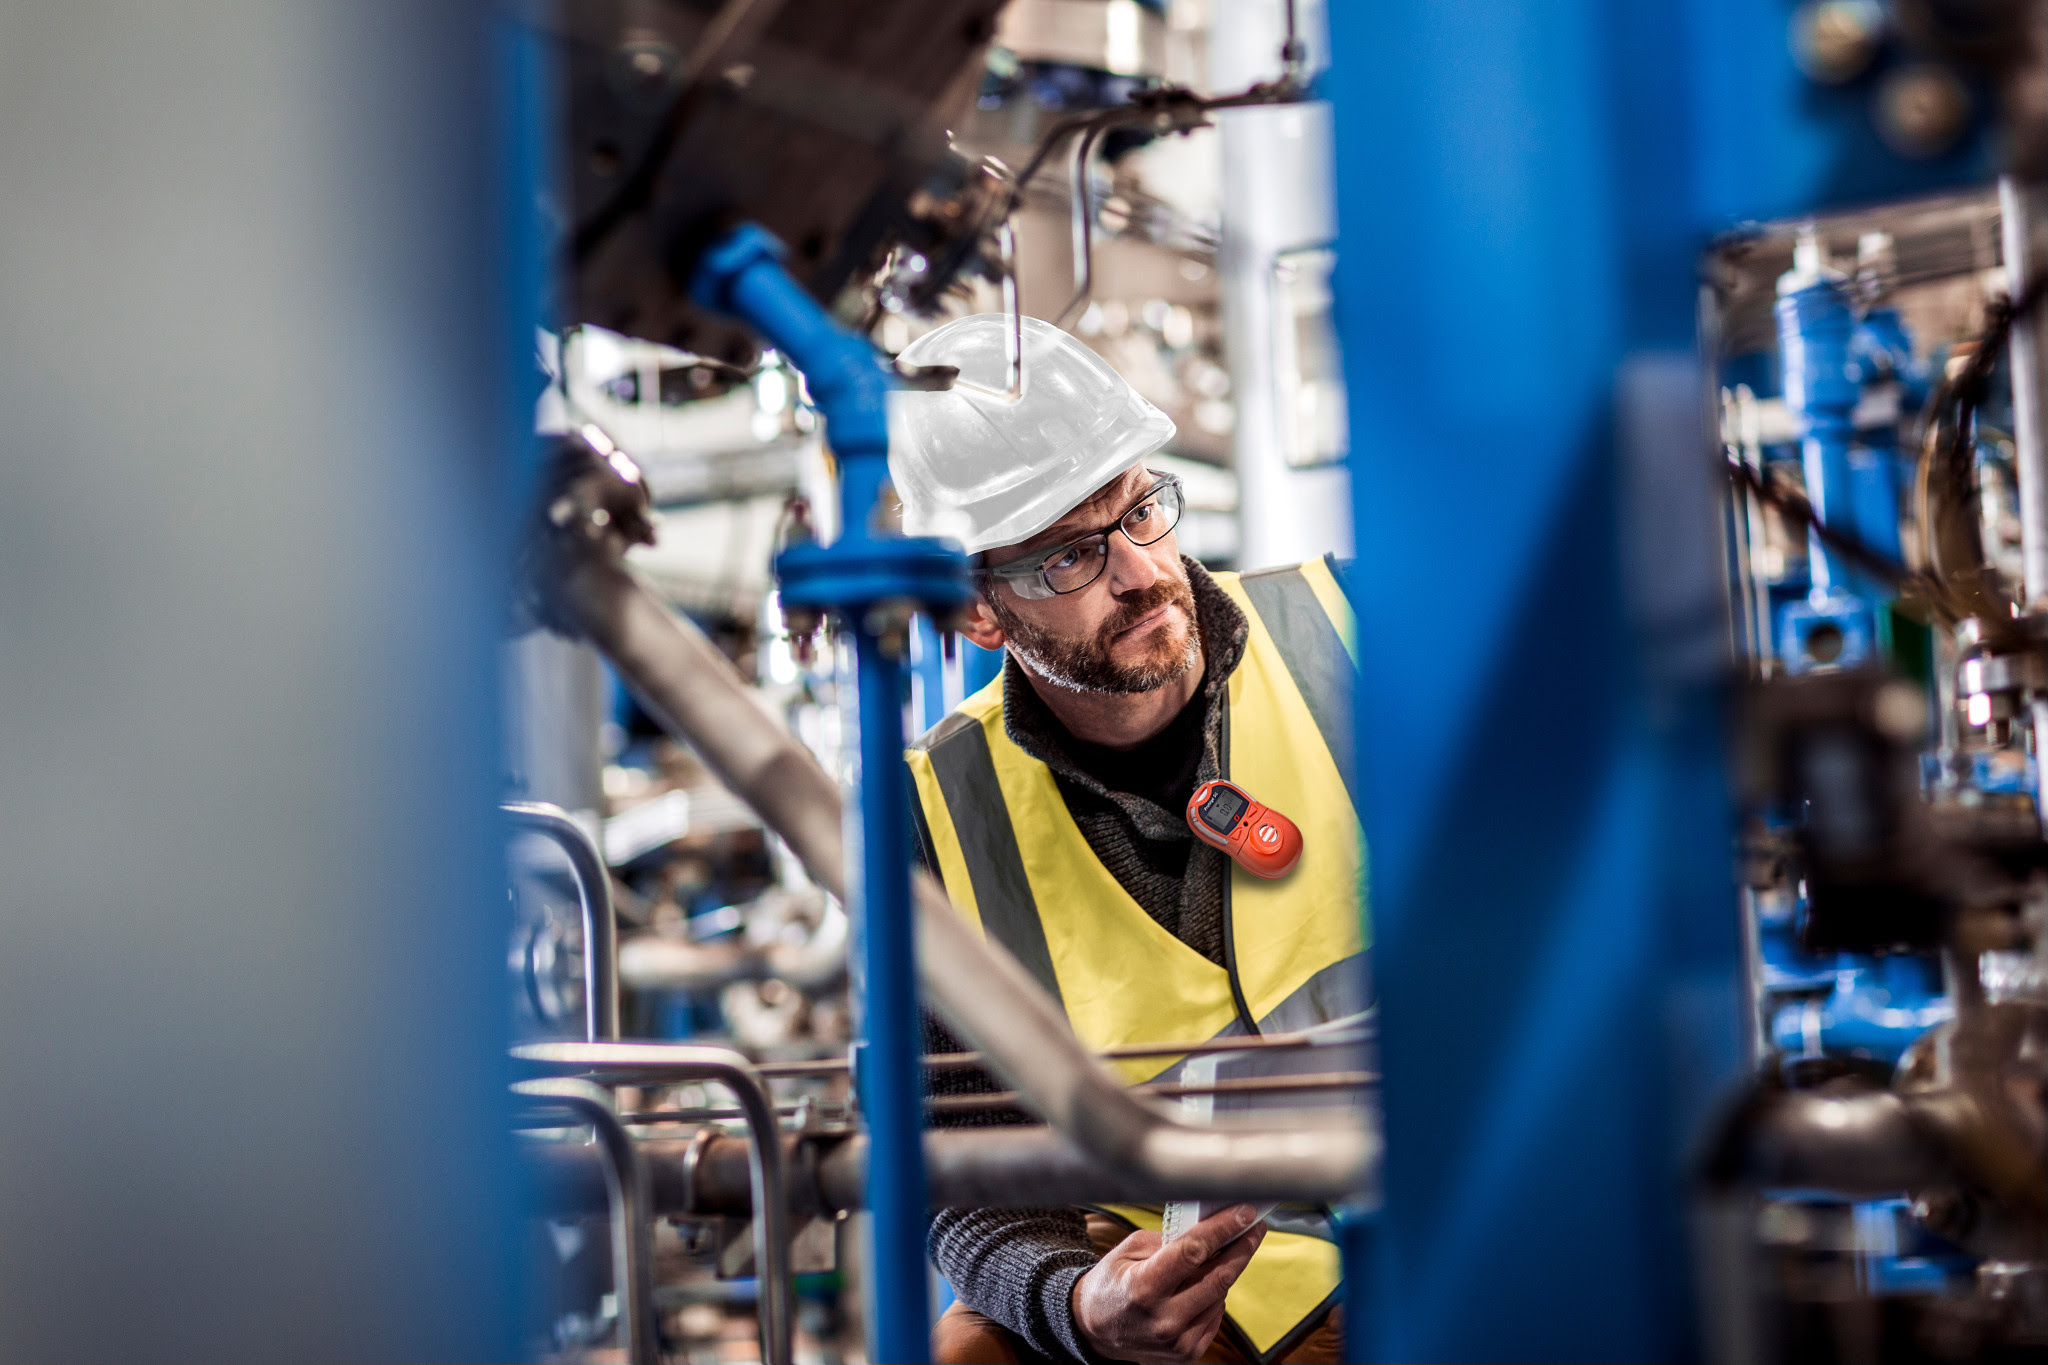 Portable gas detector keeps workers safe